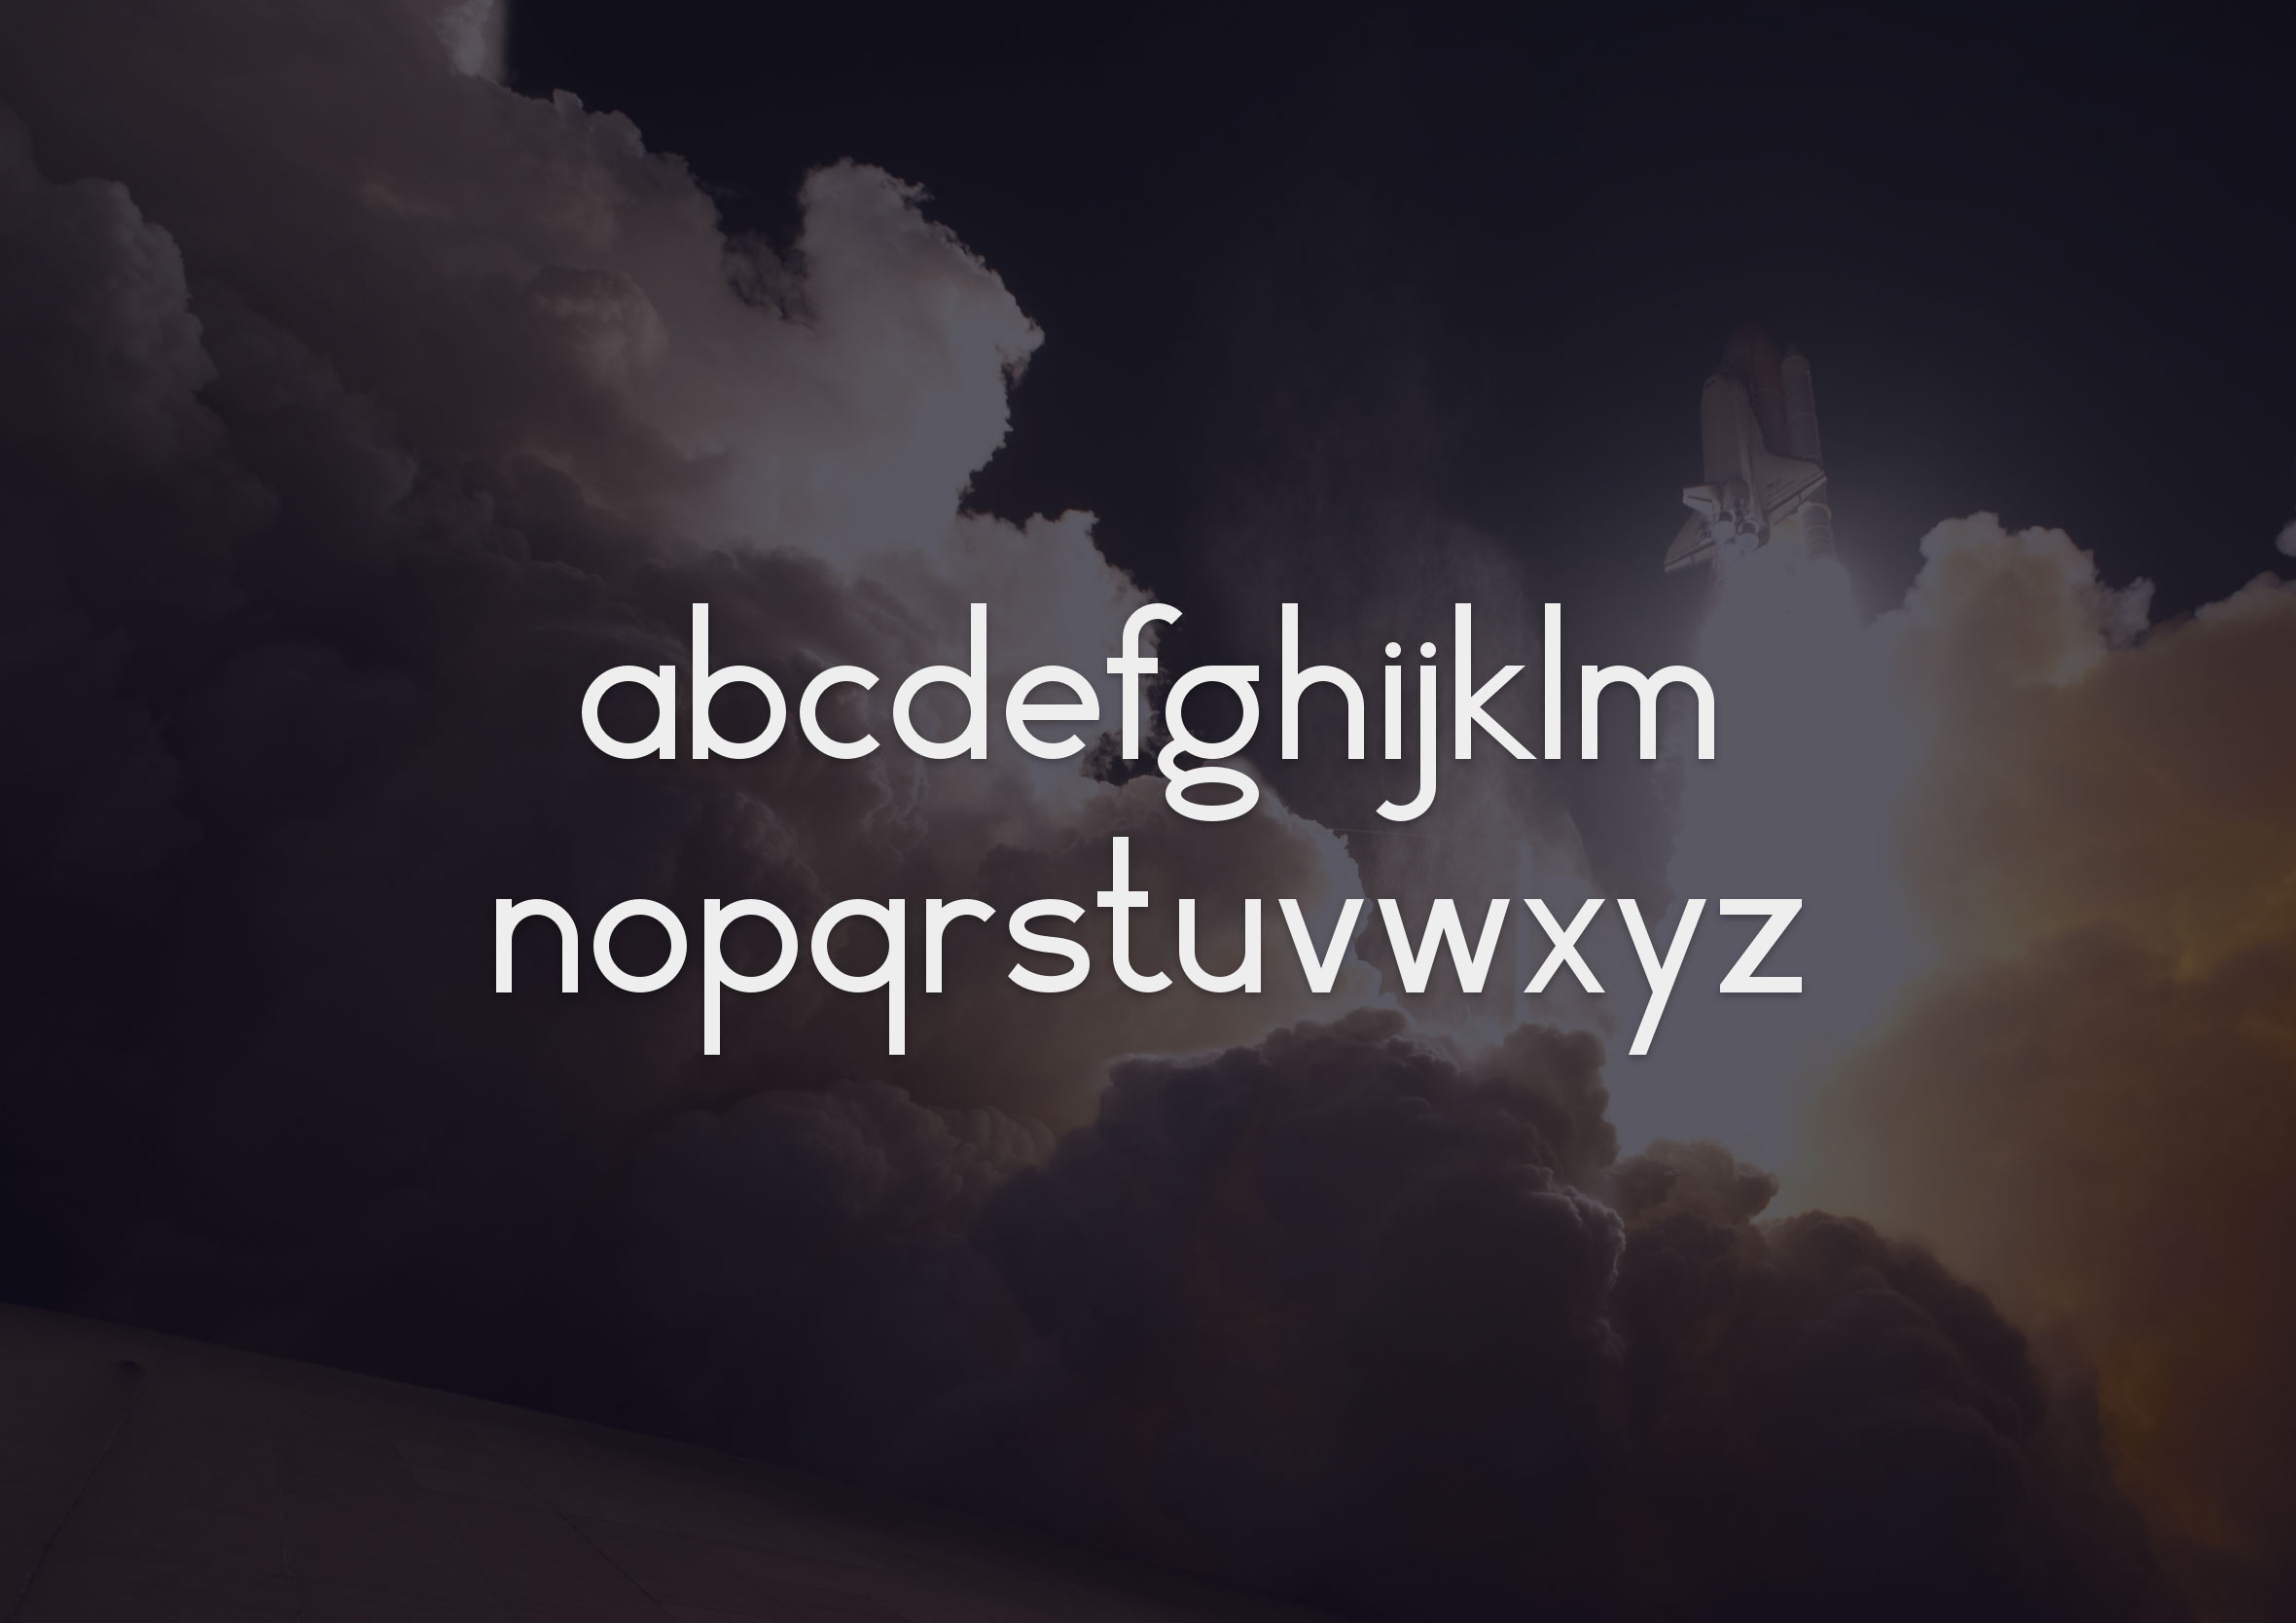 rich-mcnabb-free-vector-font-featured